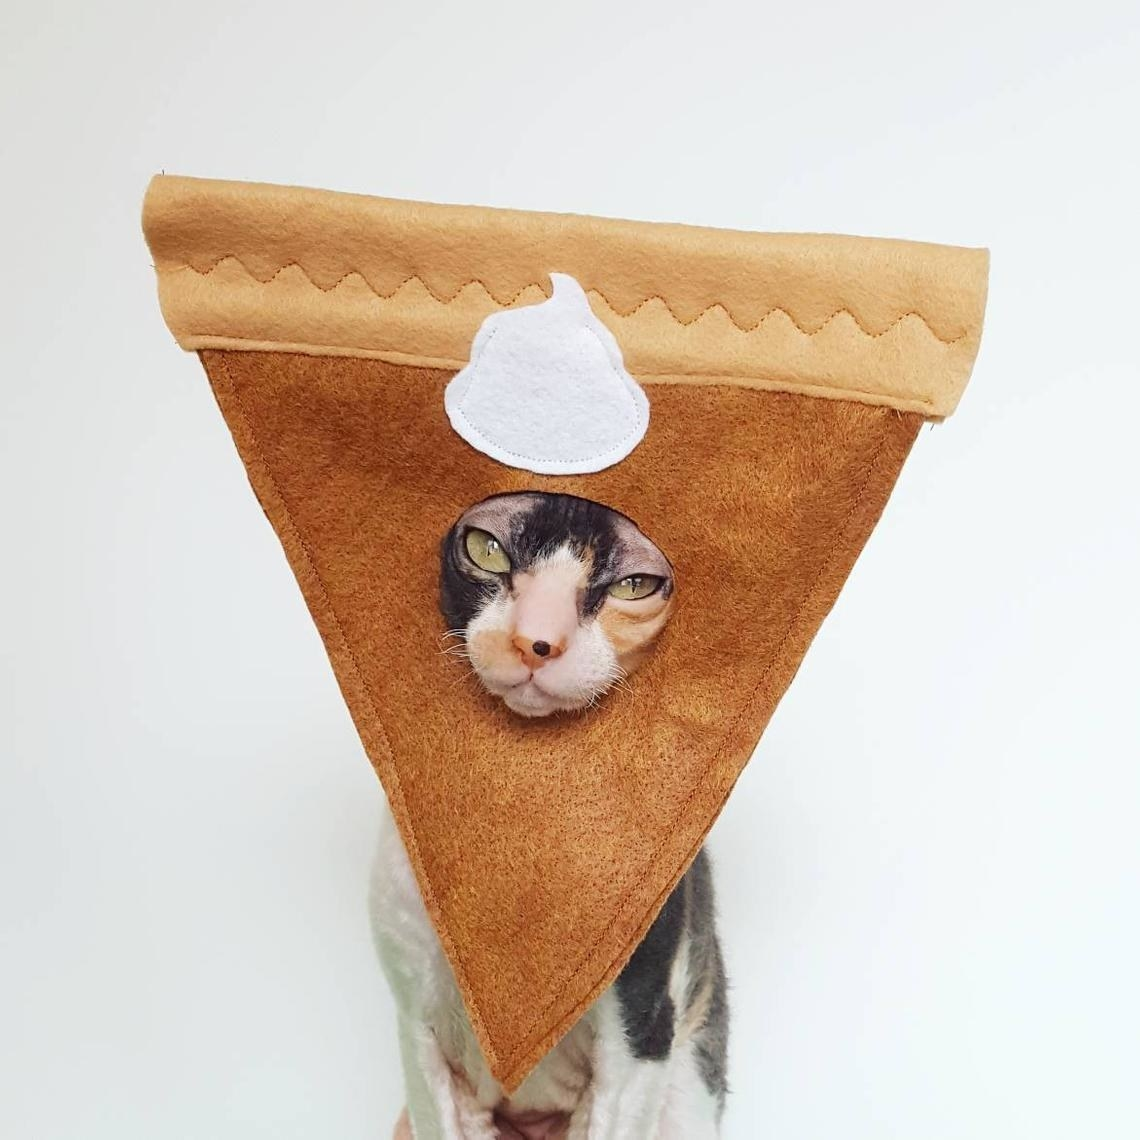 A cat wearing the pie costume